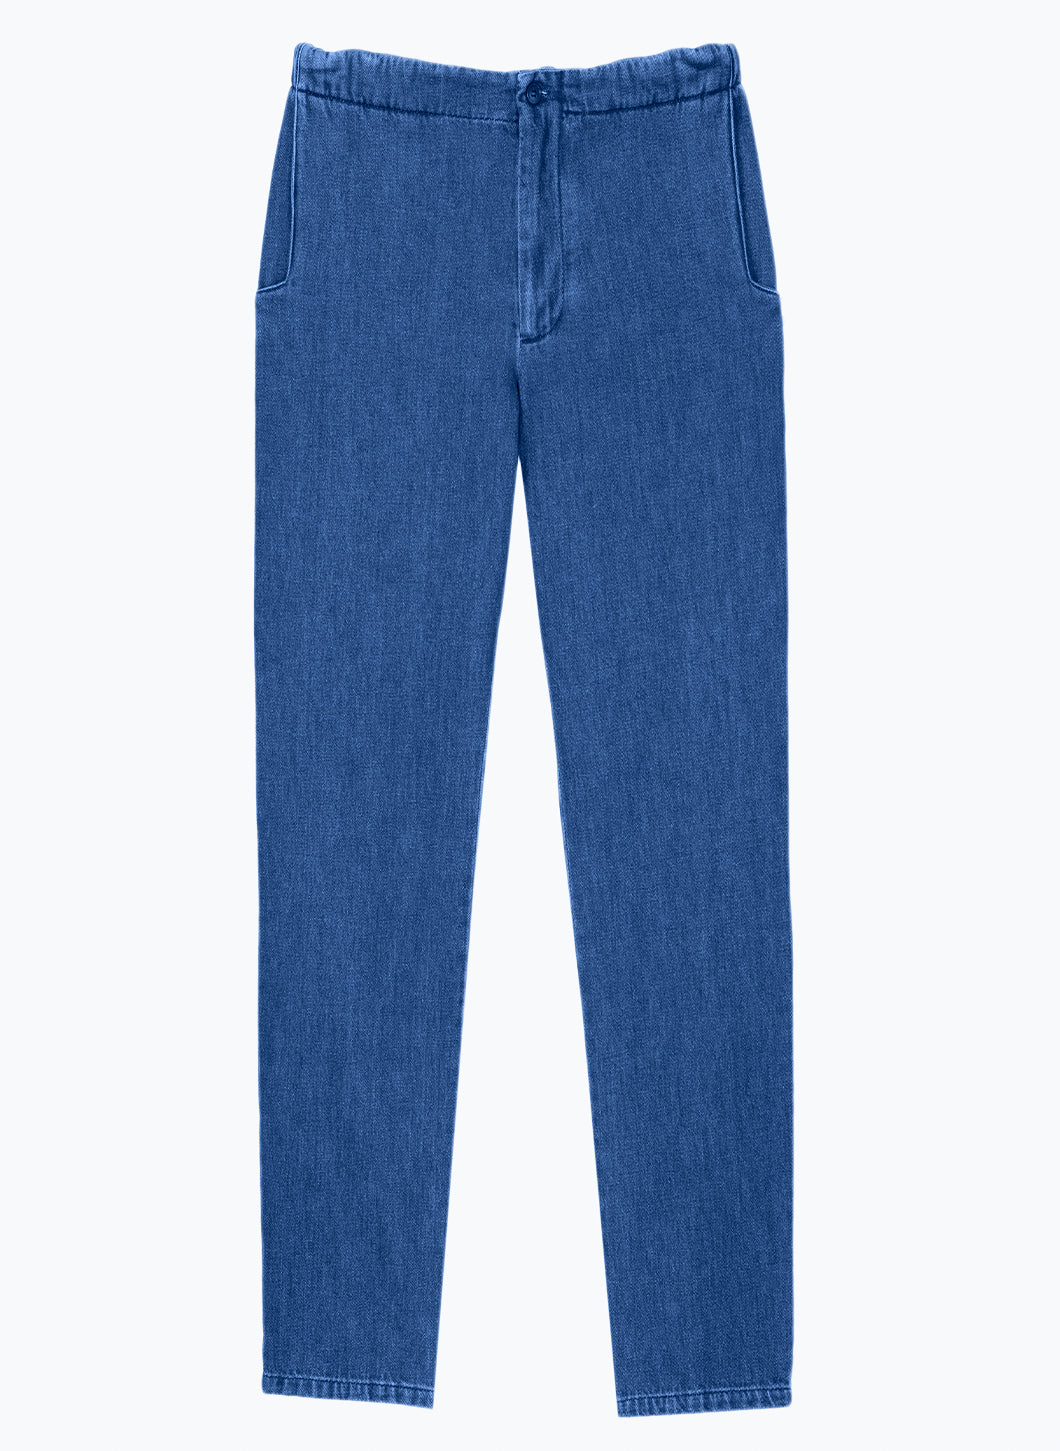 Pants with Notched Pockets in Stoned Denim